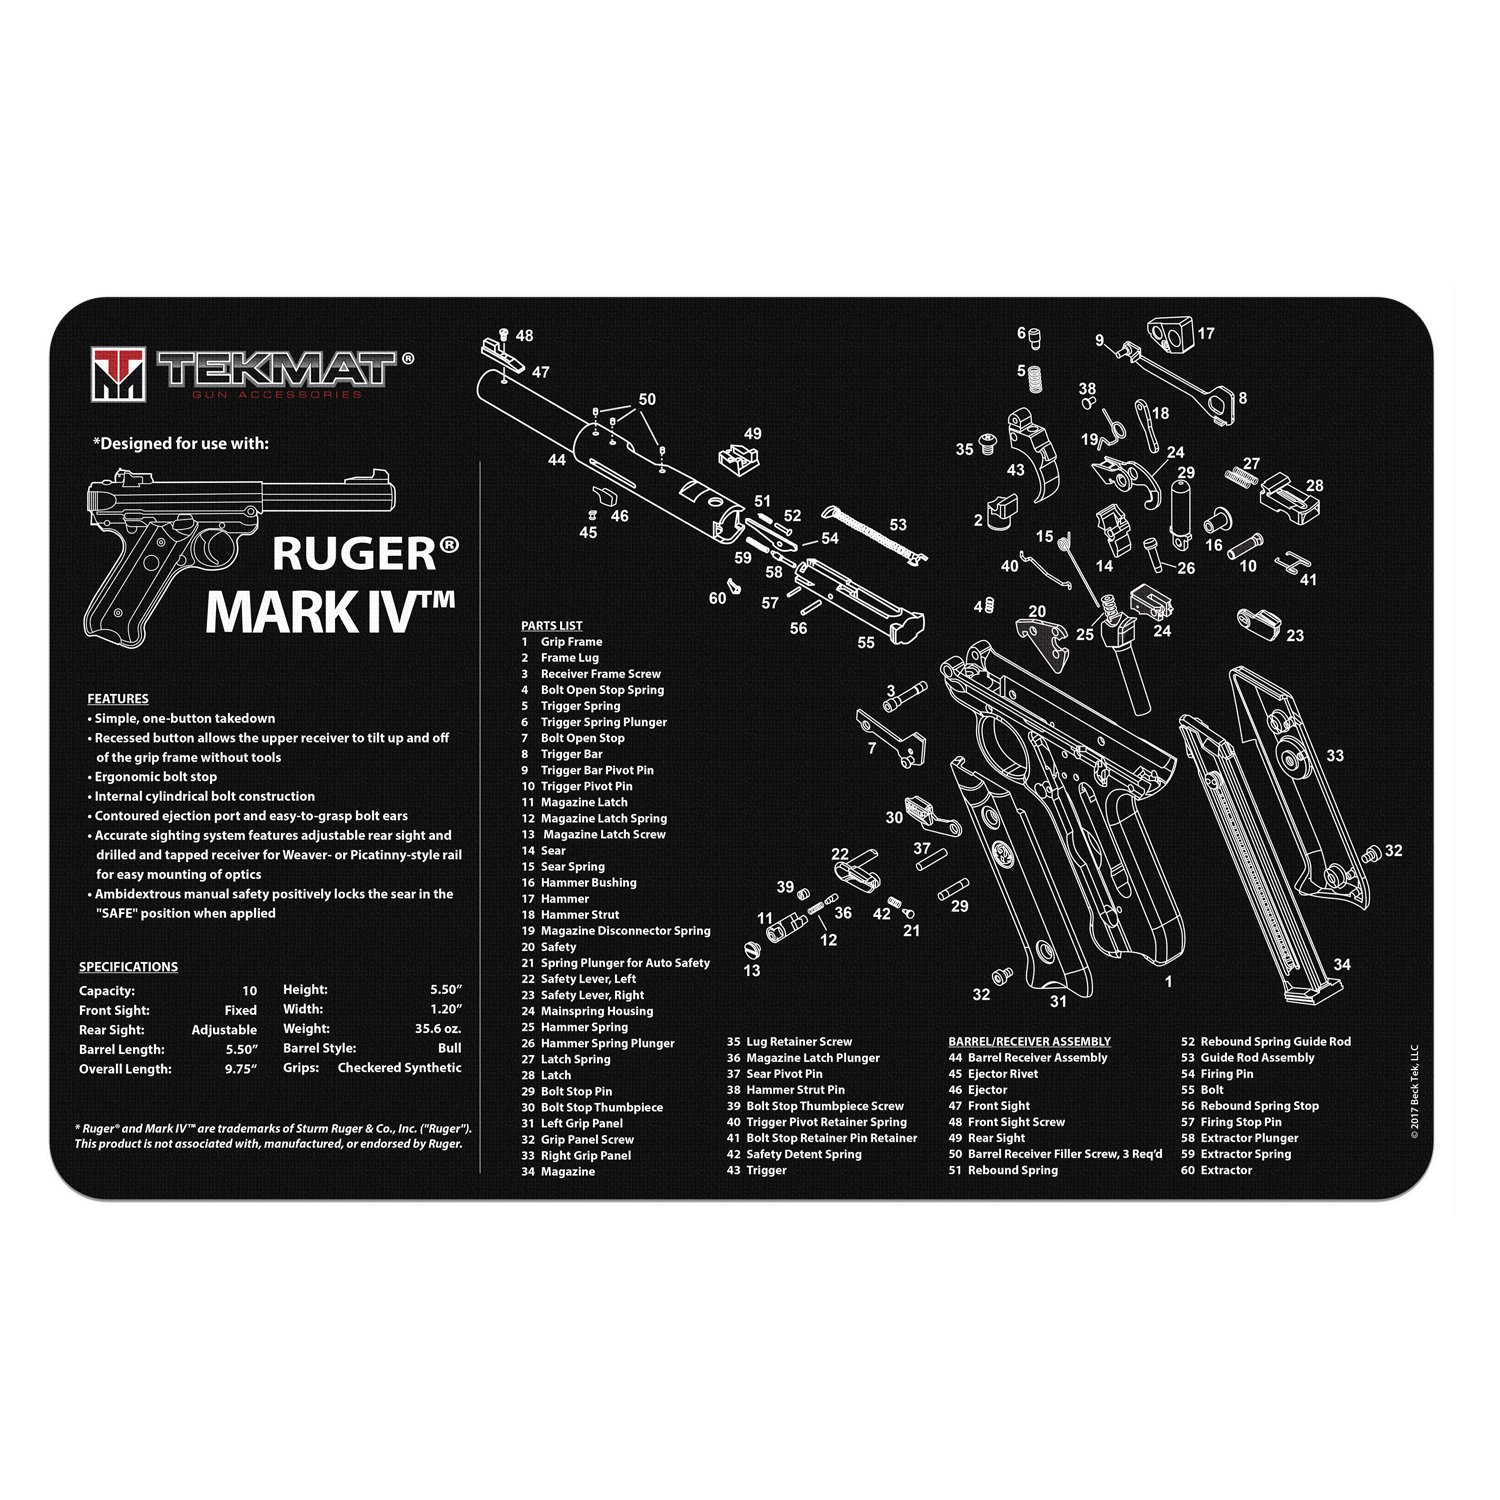 TekMat Ruger Mark IV Cleaning Mat/11 x 17 Thick, Durable, Waterproof/Handgun Cleaning Mat with Parts Diagram and Instructions/Armorers Bench Mat/Black